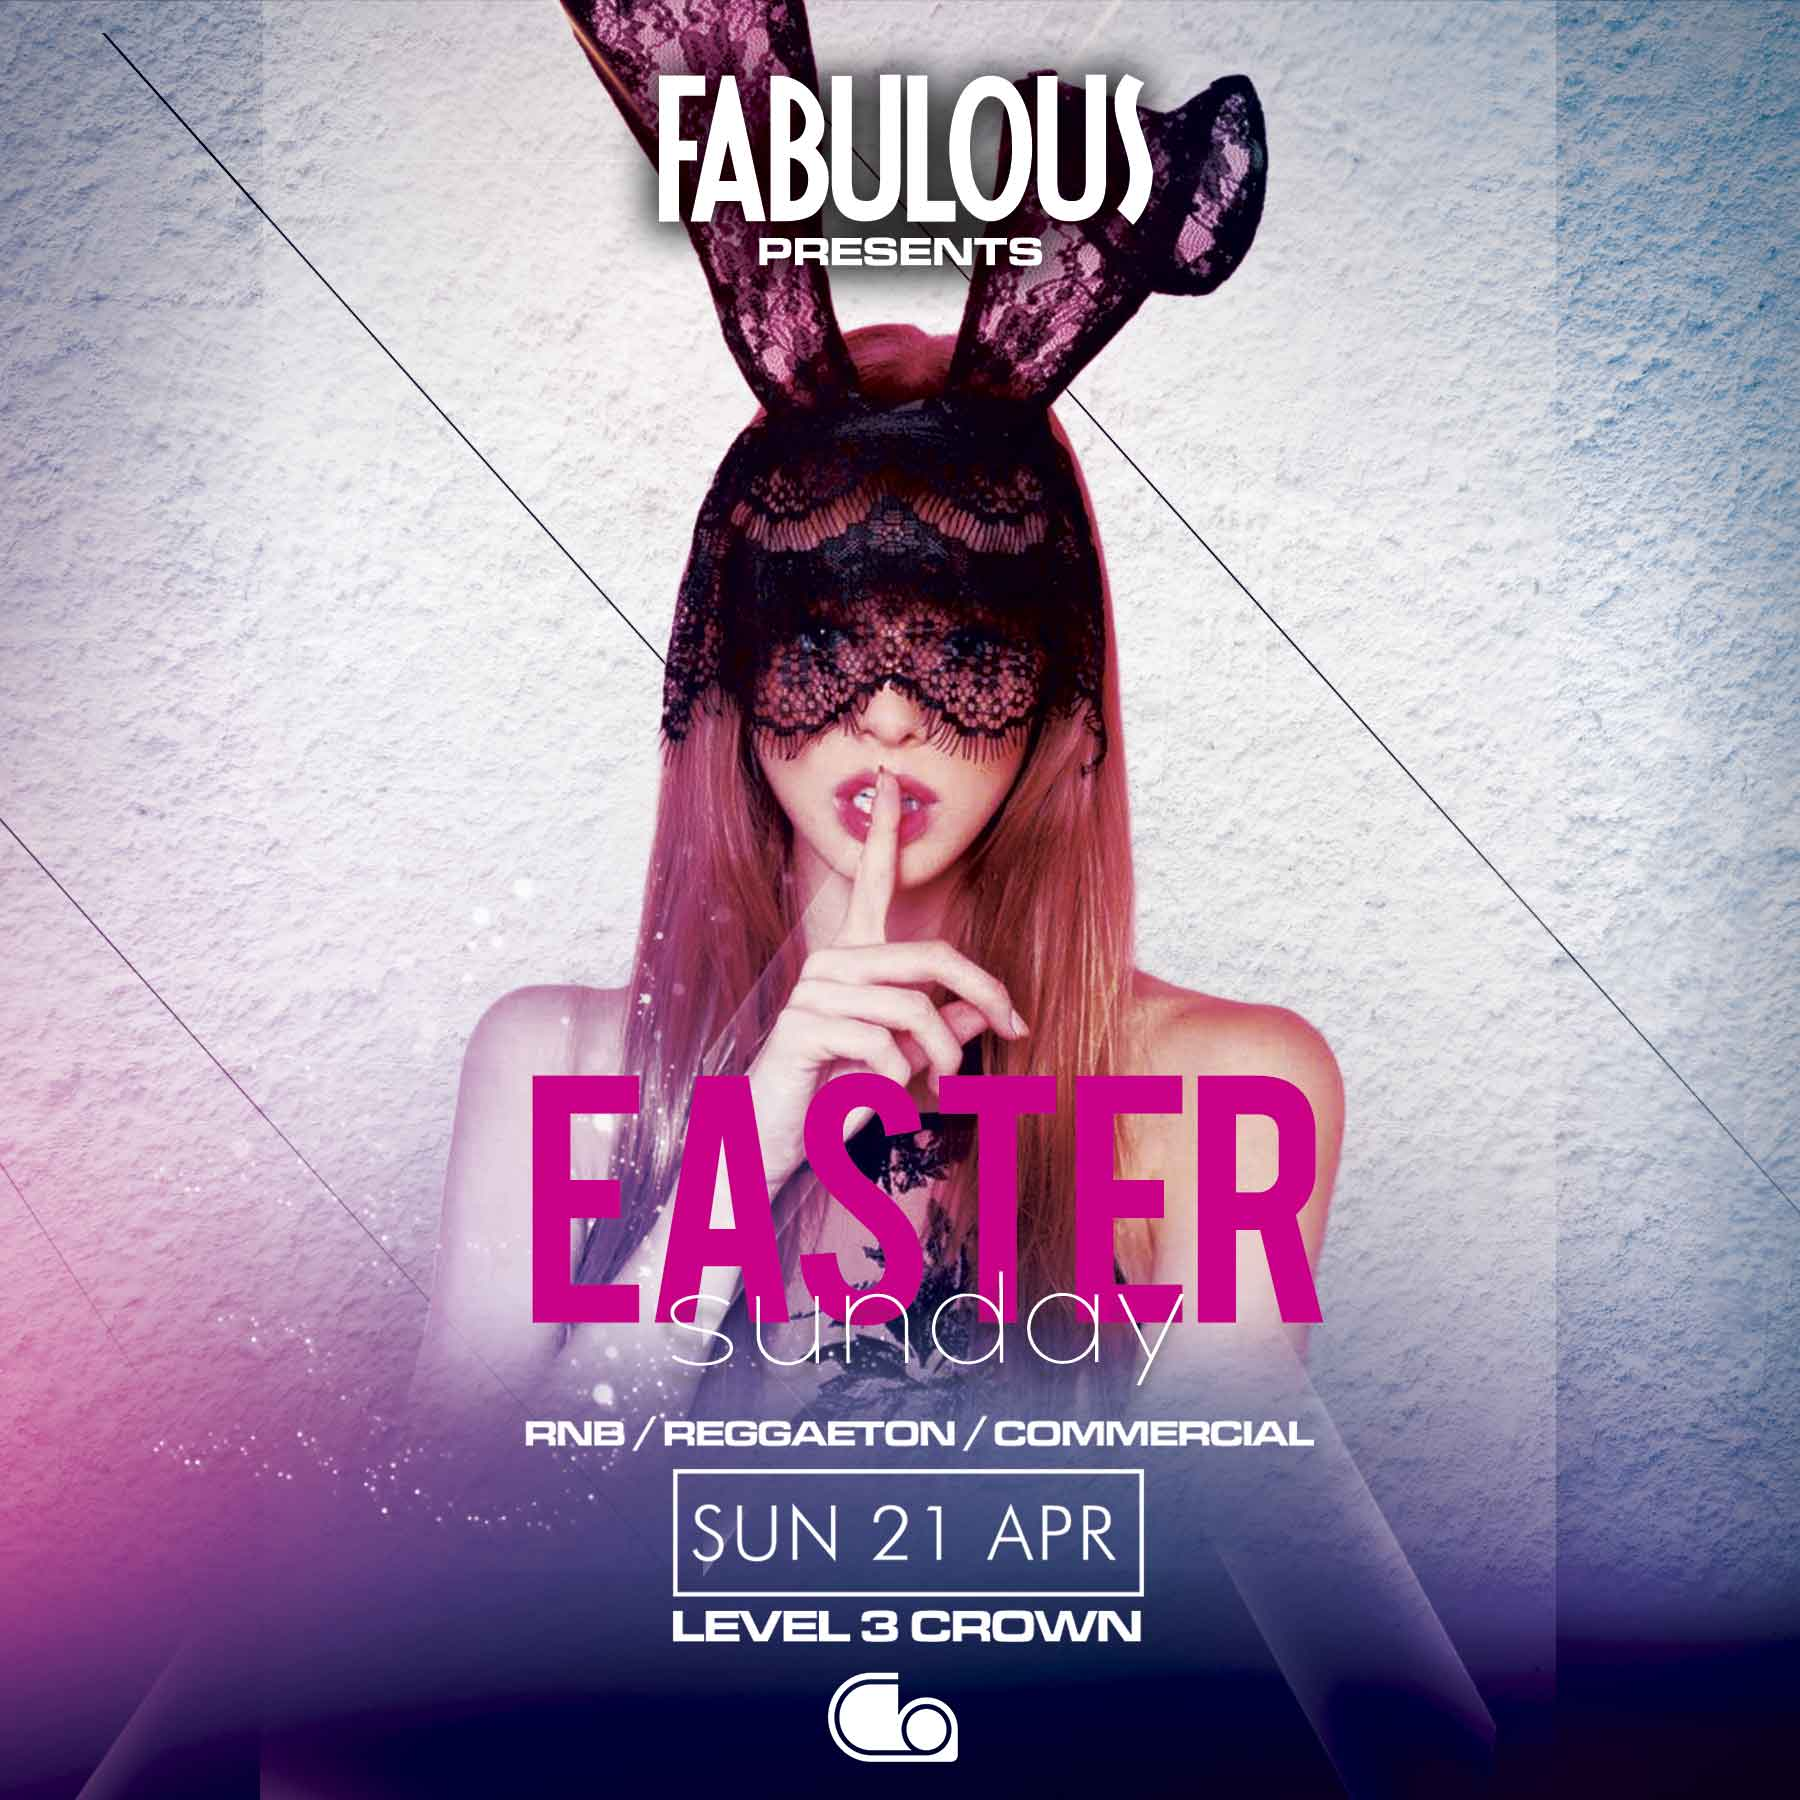 190421_Fabulous_easter sunday_min.jpg